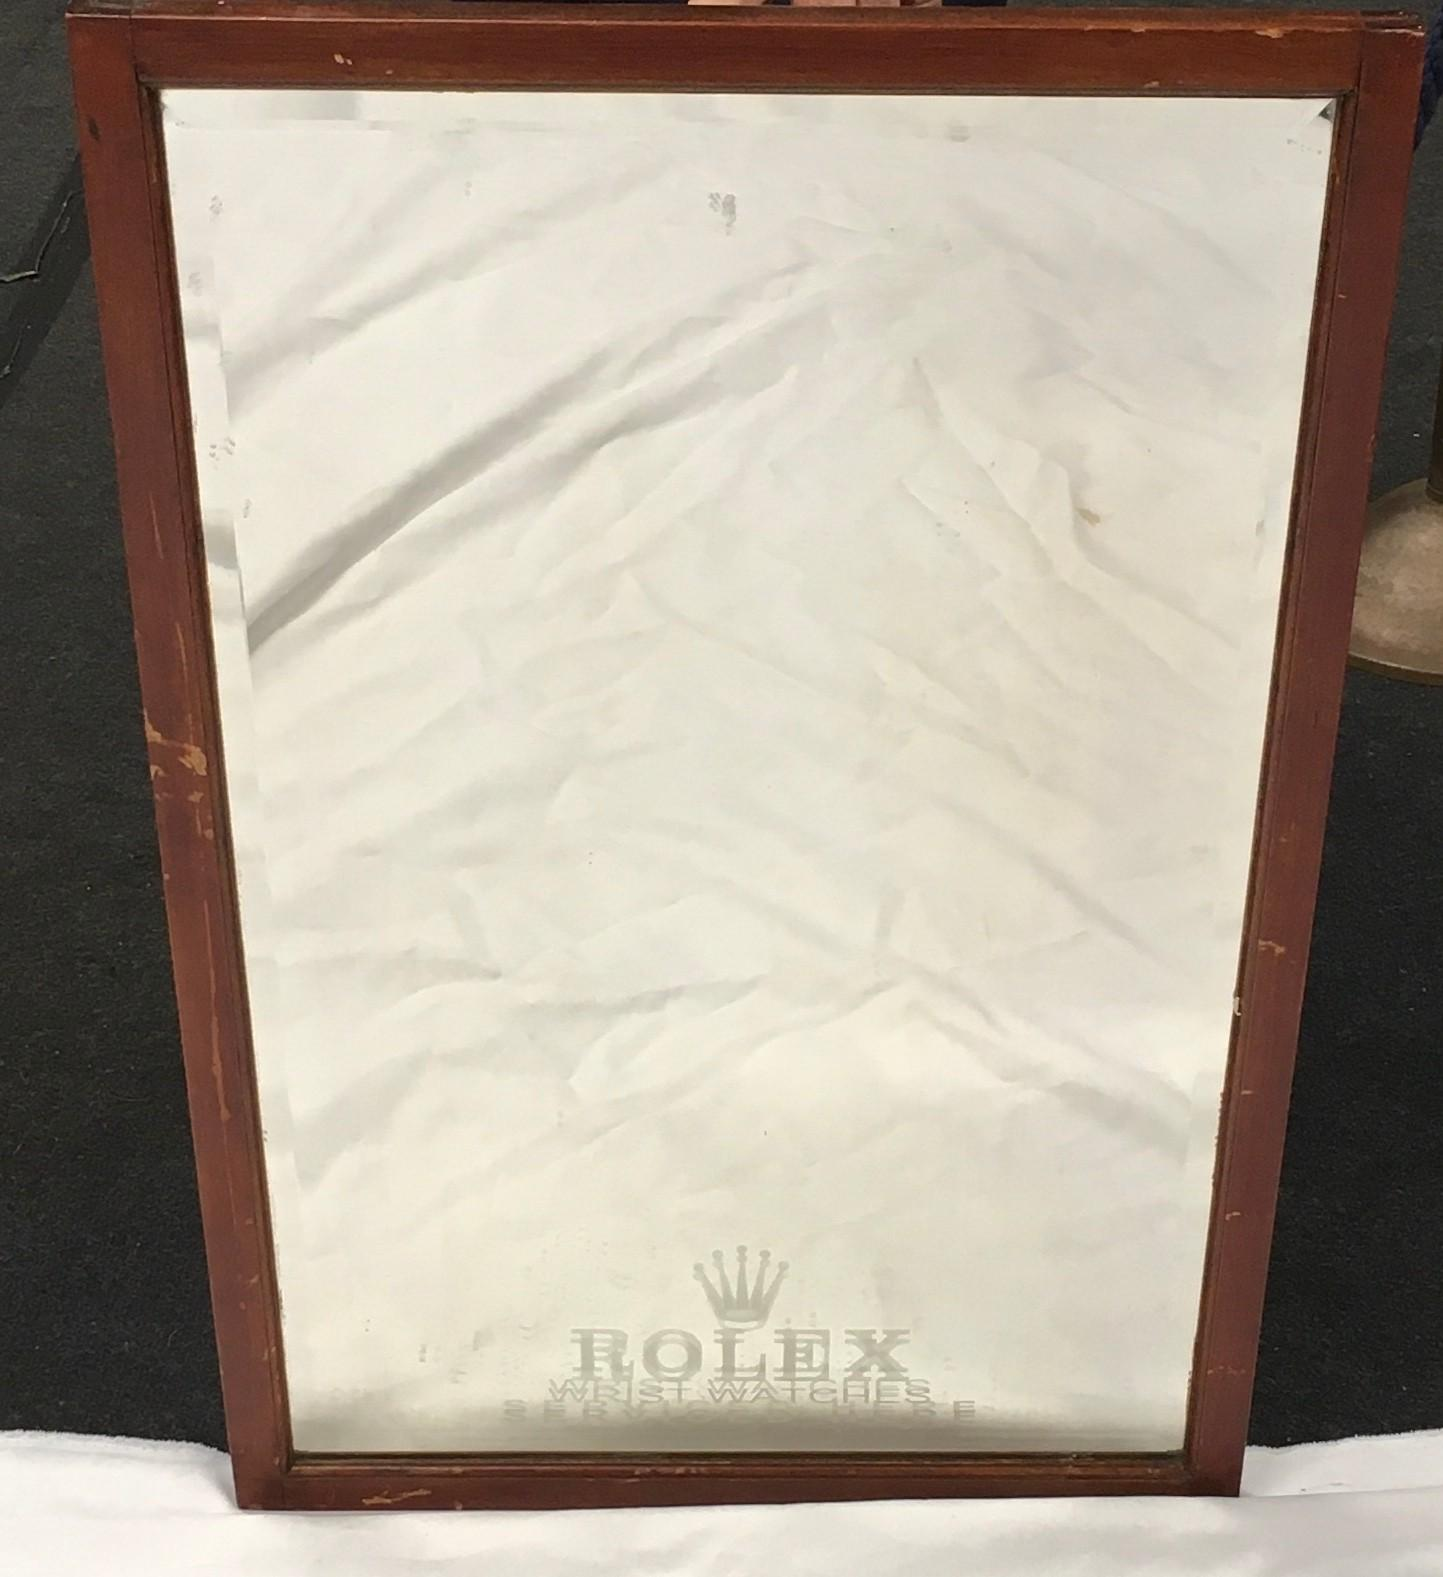 A wood framed and bevel edged mirror, etched Rolex. 80 cm by 53 cm